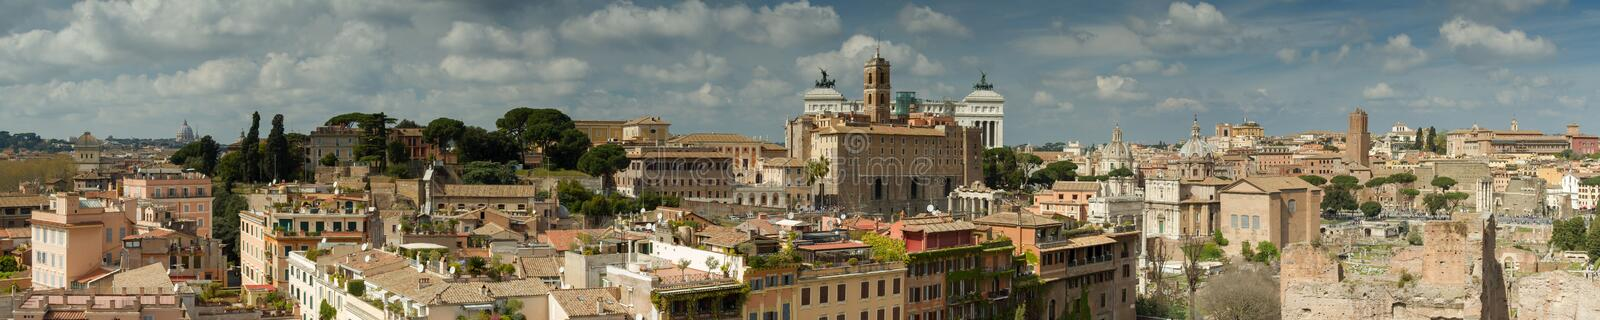 Panorama of Rome as seen from the Palatine hill. Italy royalty free stock photo